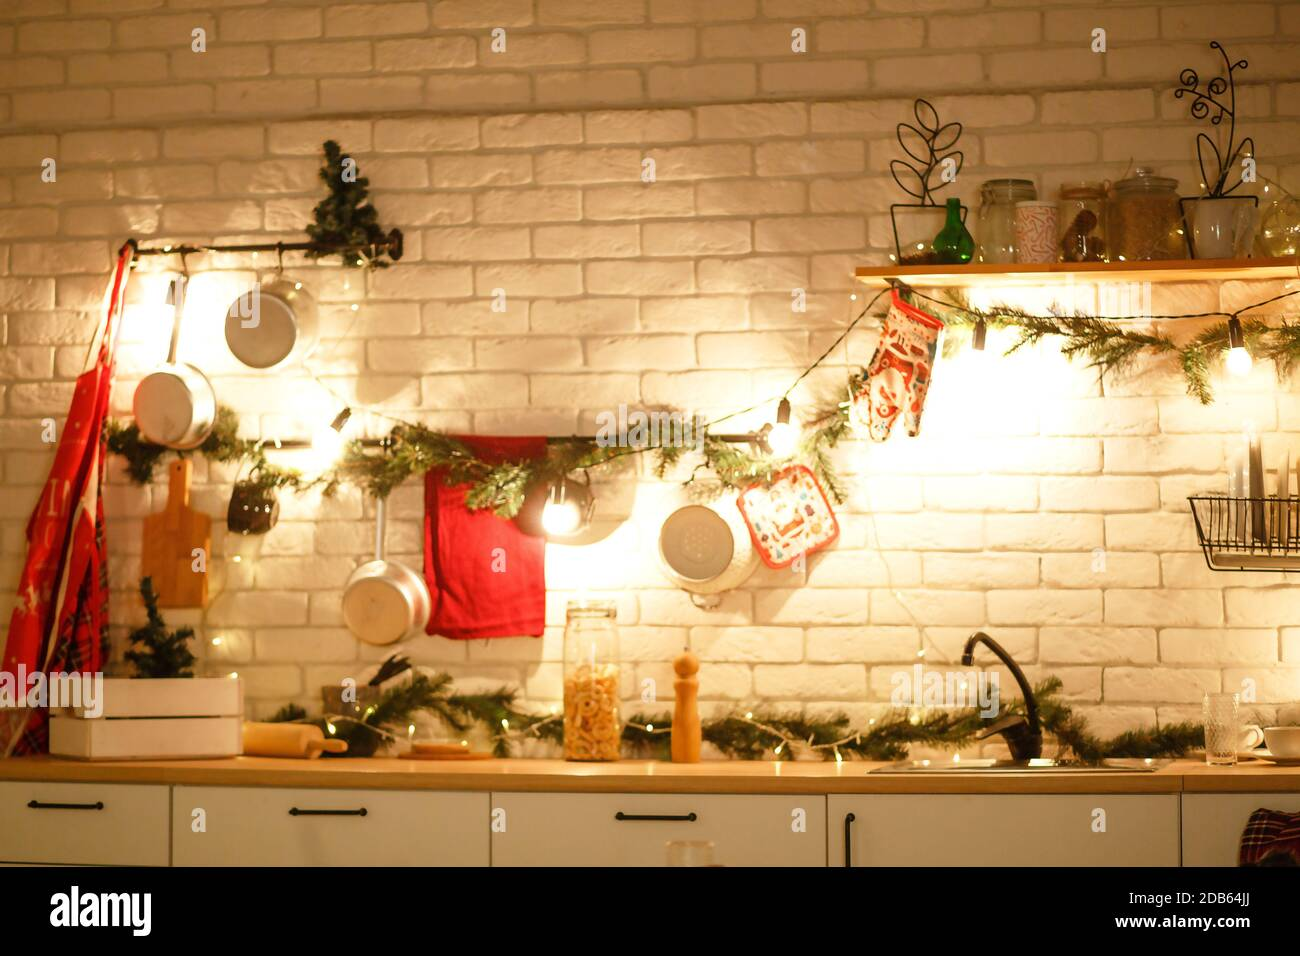 Christmas Decor In The Kitchen Preparing For The Celebration Lights Of Garlands Plates Incandescent Lamps In Loft Style Christmas Tree Kitchen U Stock Photo Alamy